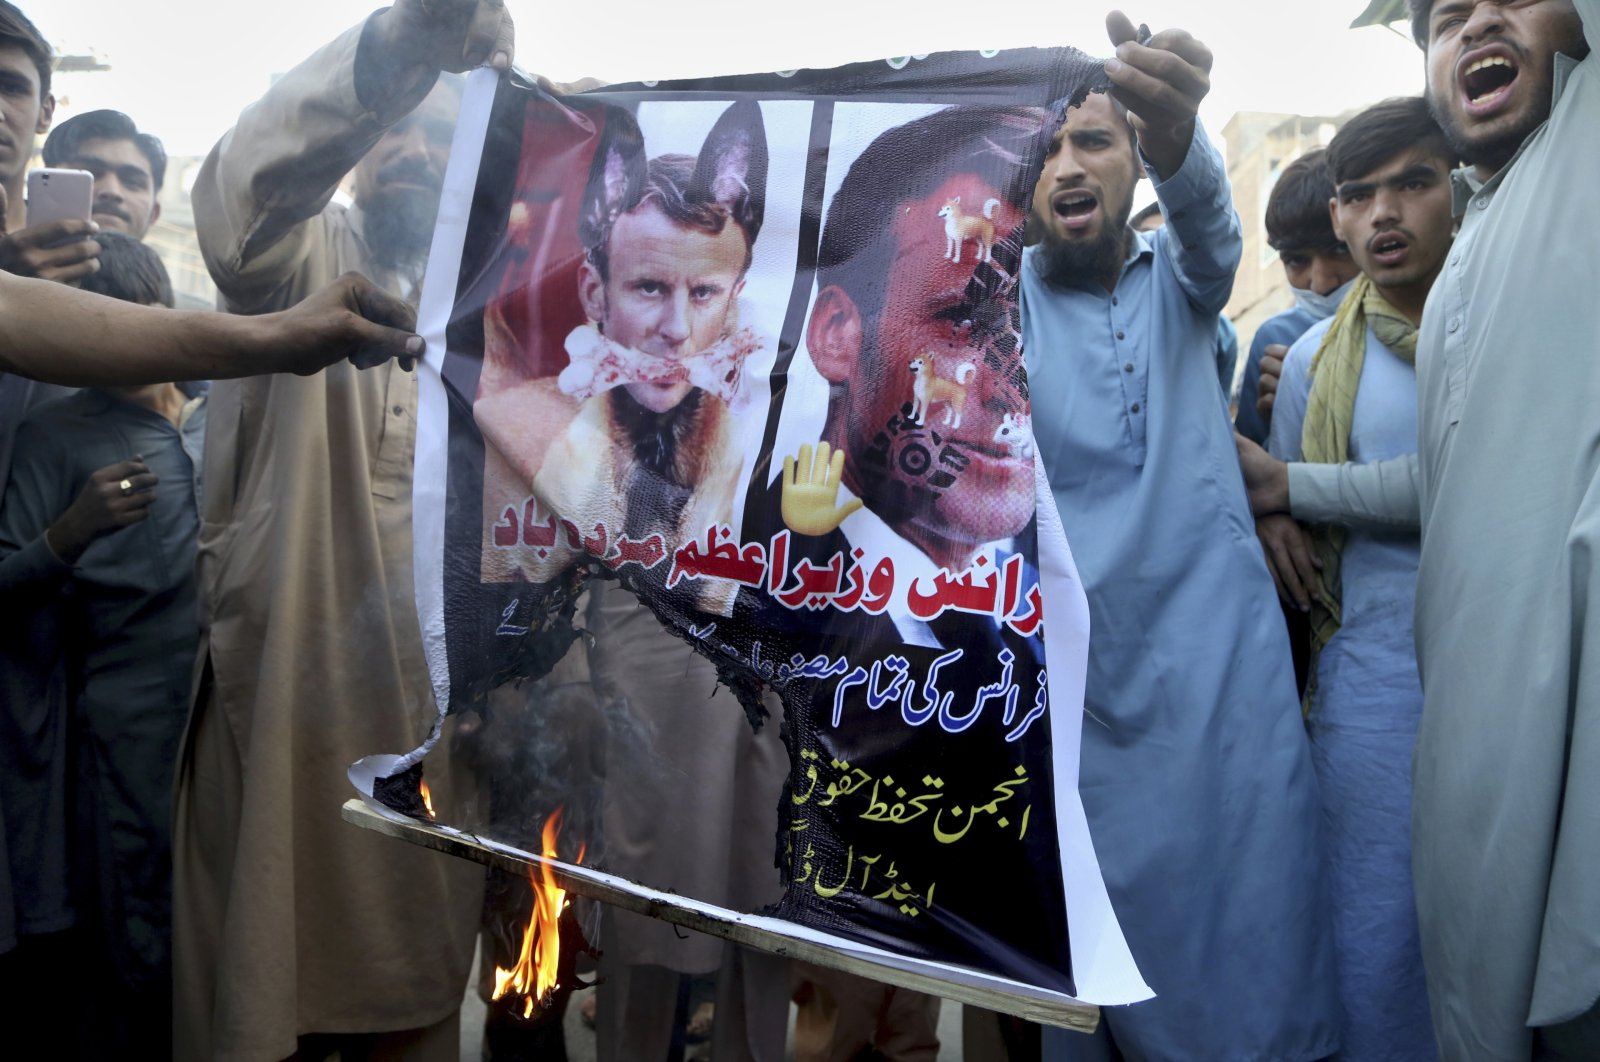 Traders burn defaced images of Emmanuel Macron during a protest against the French president and the republication of caricatures in France of the Prophet Muhammad, in Peshawar, Pakistan, Nov. 2, 2020. (AP Photo)